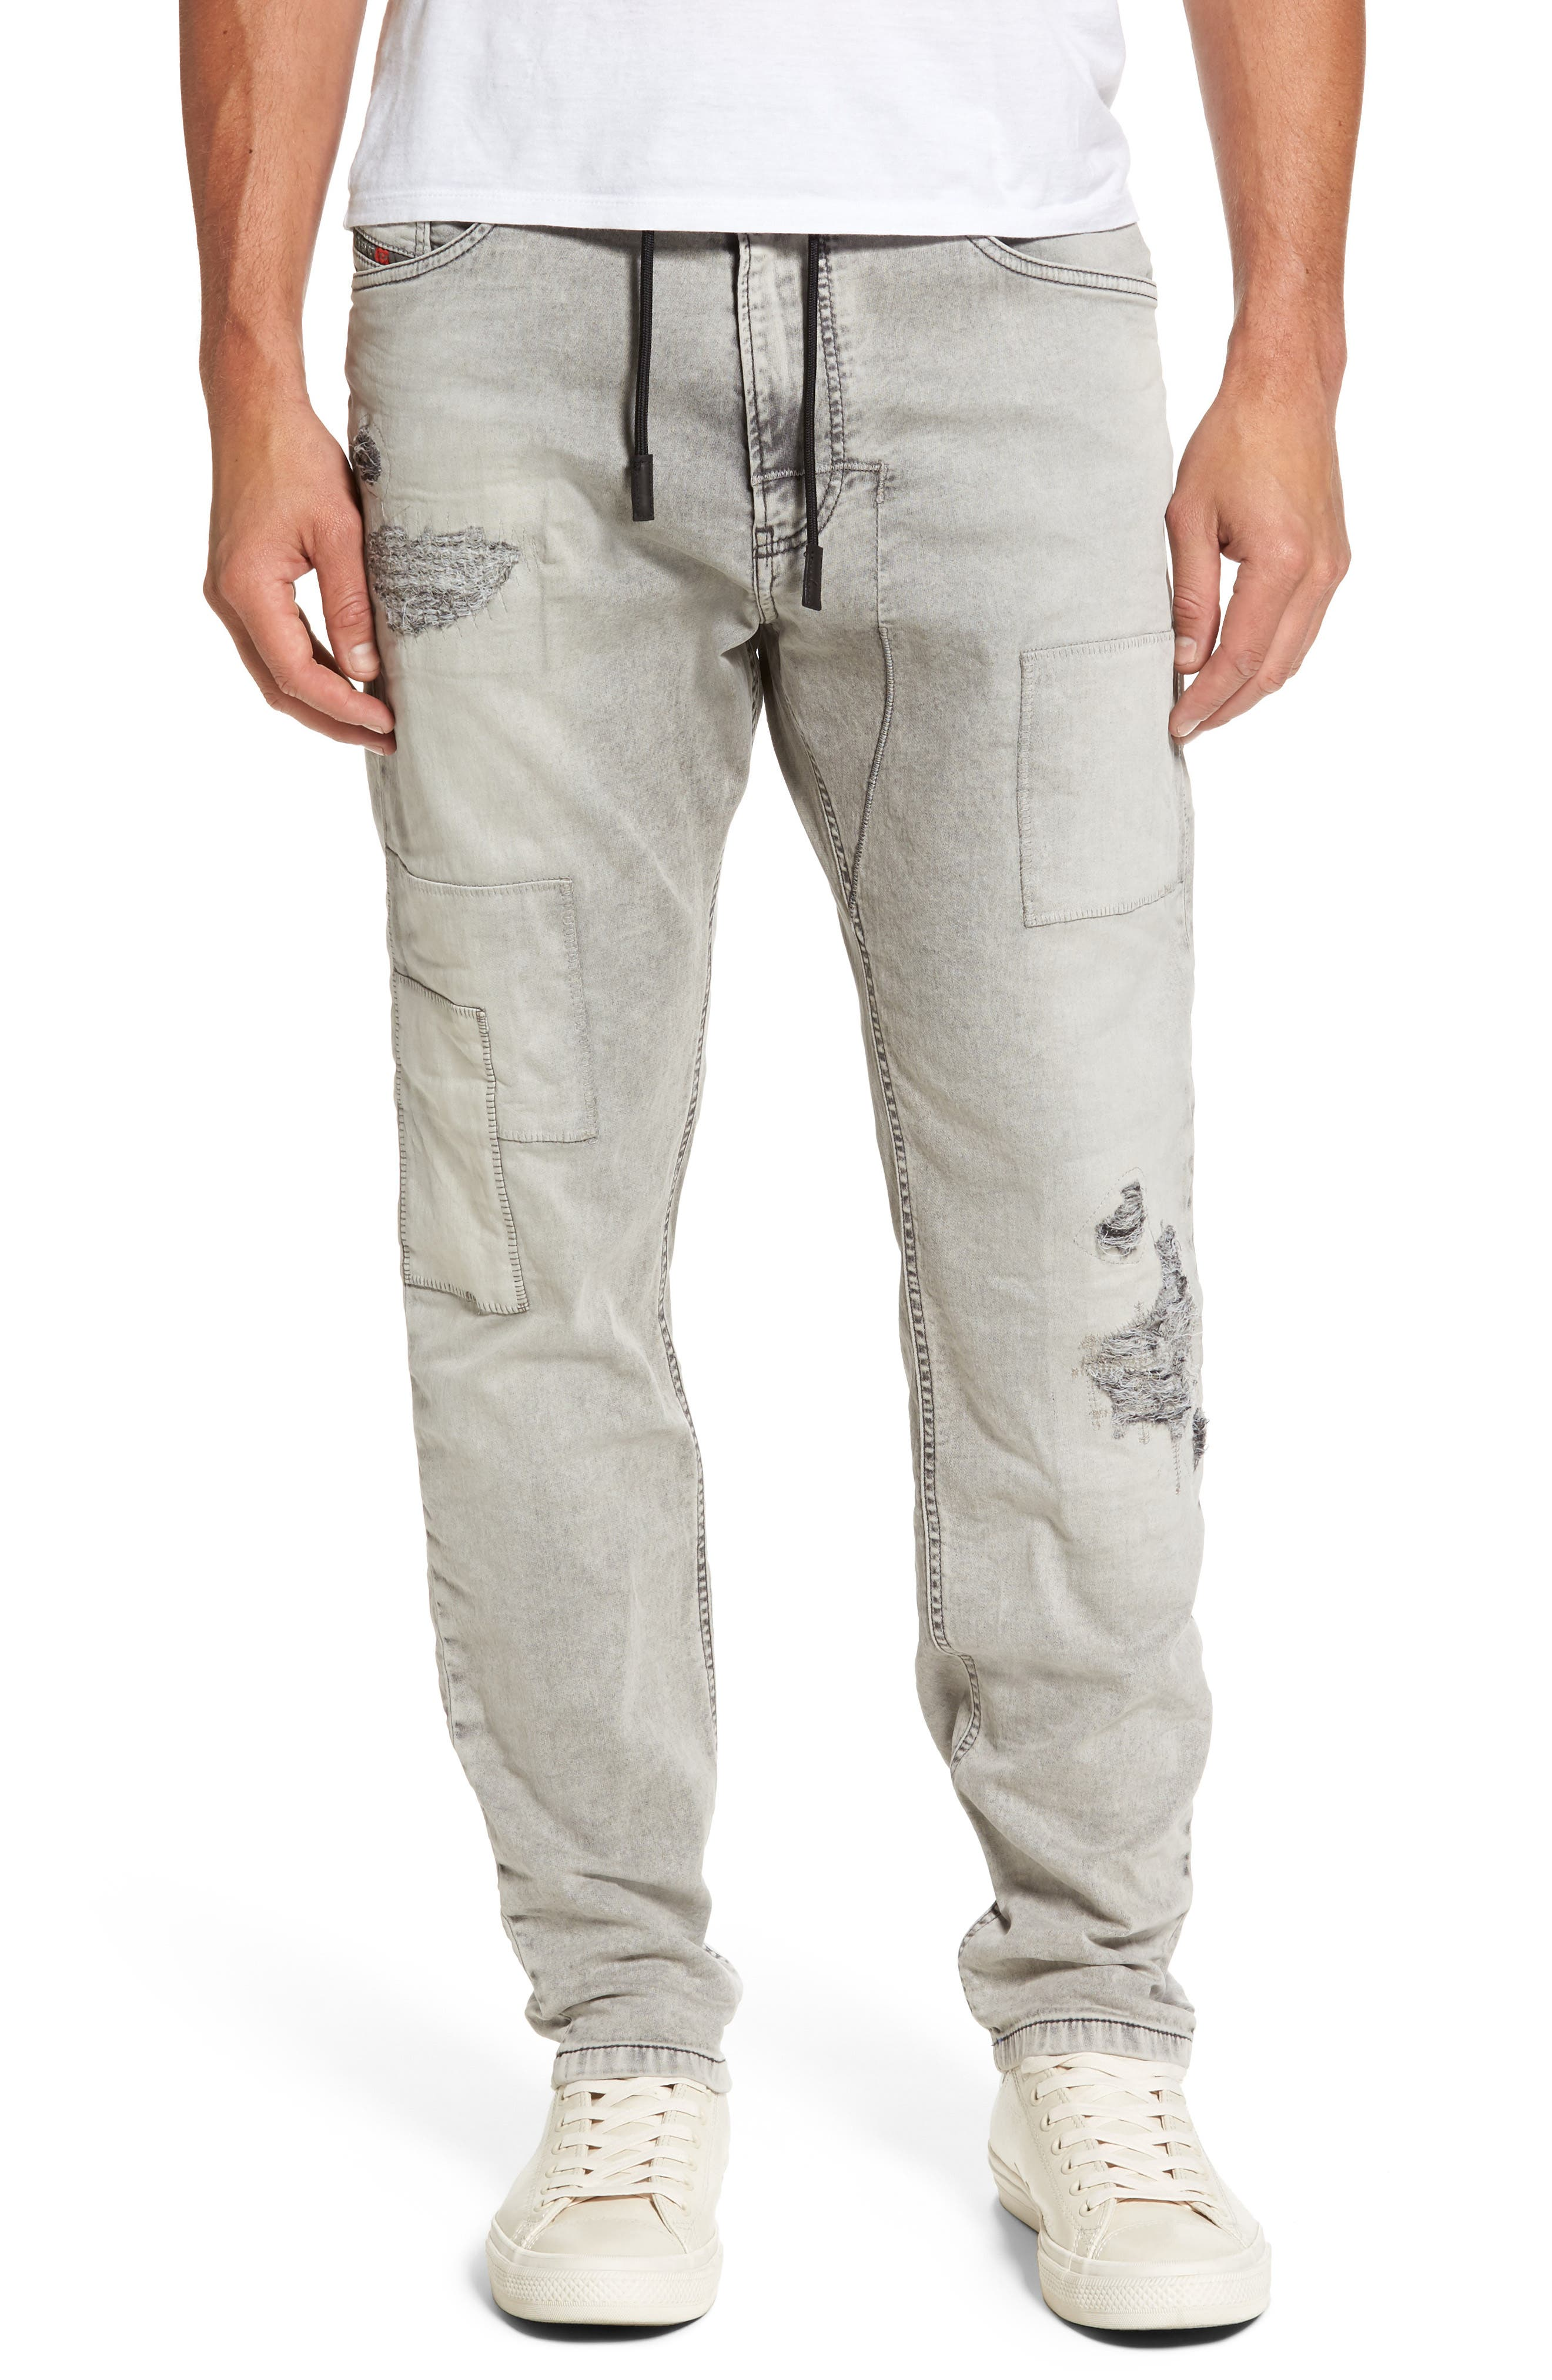 Narrot Slouchy Skinny Fit Jeans,                             Main thumbnail 1, color,                             0684M